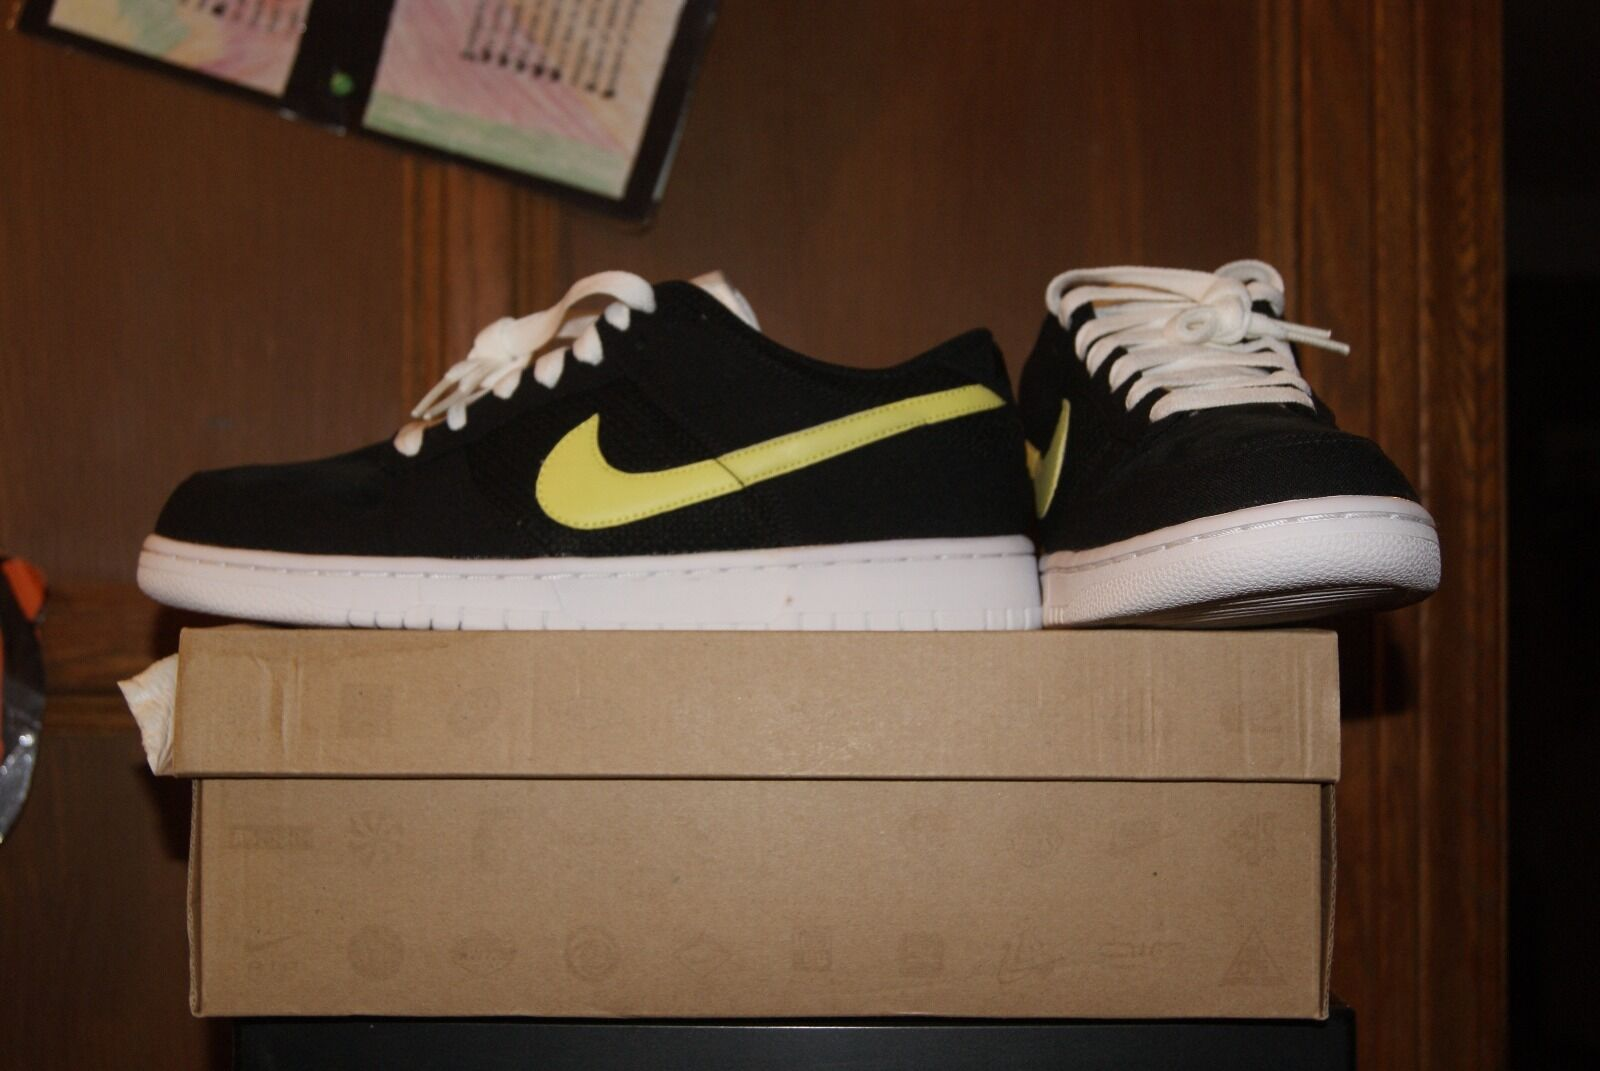 Mens Nike Dunk Low CL Black Yellow White Sz 9 or 9.5 Shoes Brand discount